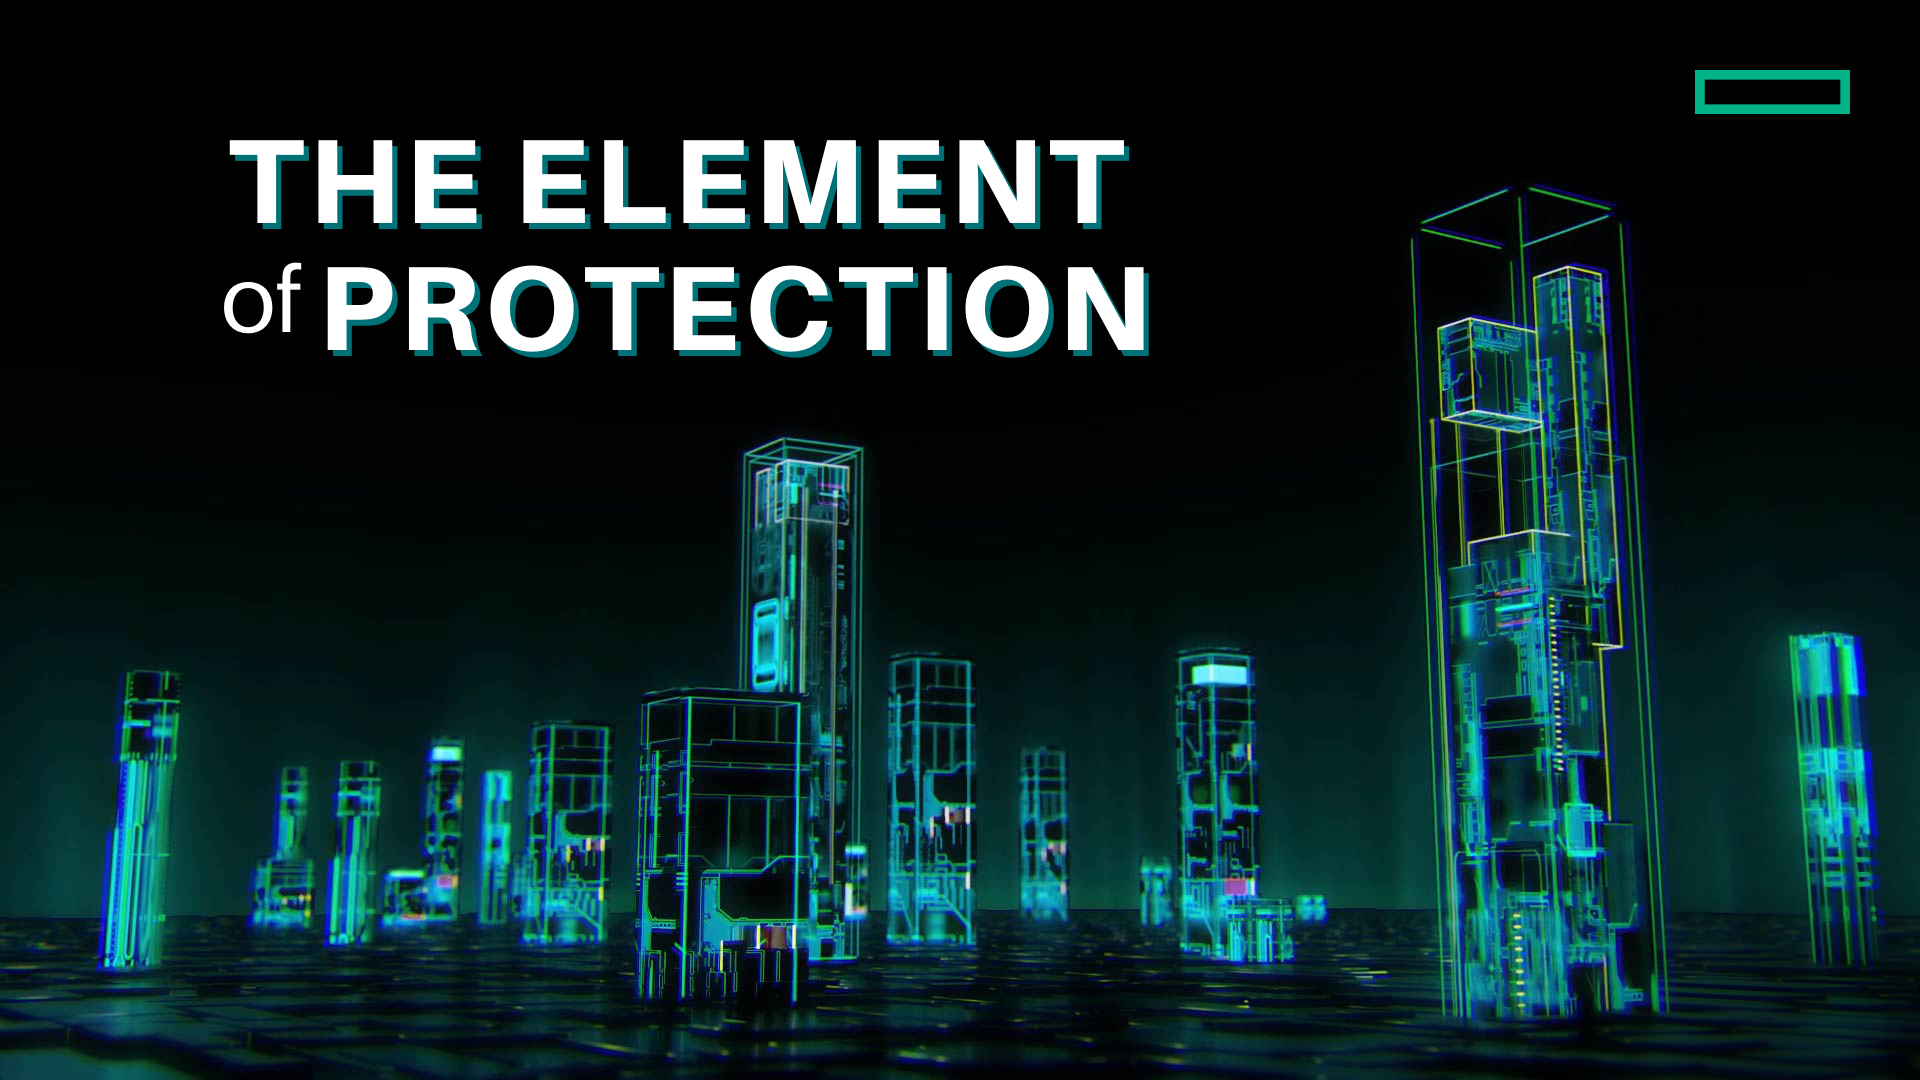 THE ELEMENT of PROTECTION